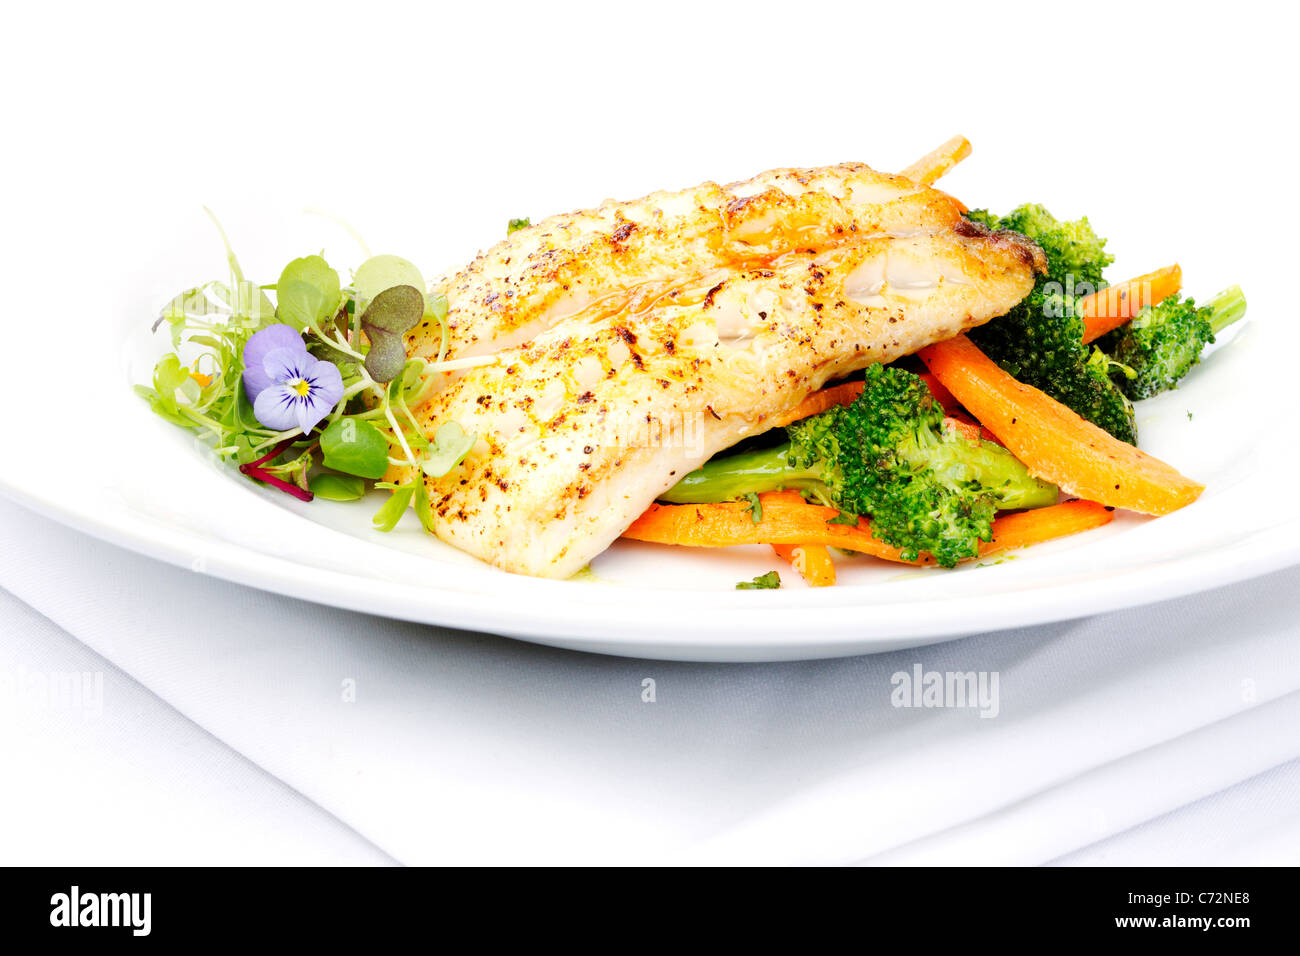 Fresh black cod on bed of broccoli and carrots with a touch of micro herbs - Stock Image